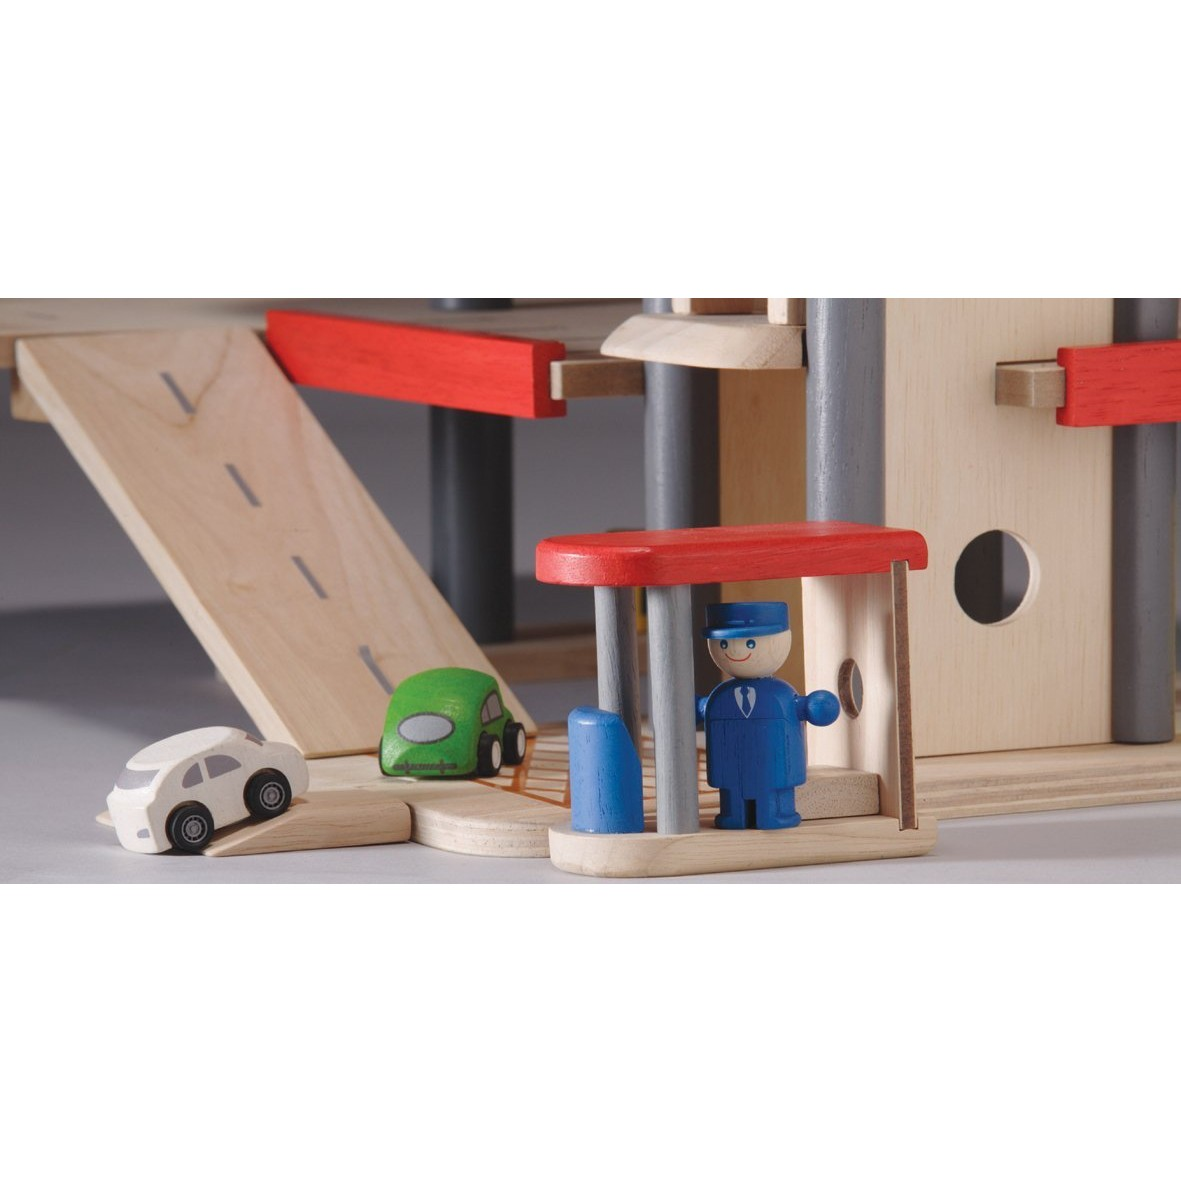 Wooden Toy Plans Catalog : Plan toys parking garage